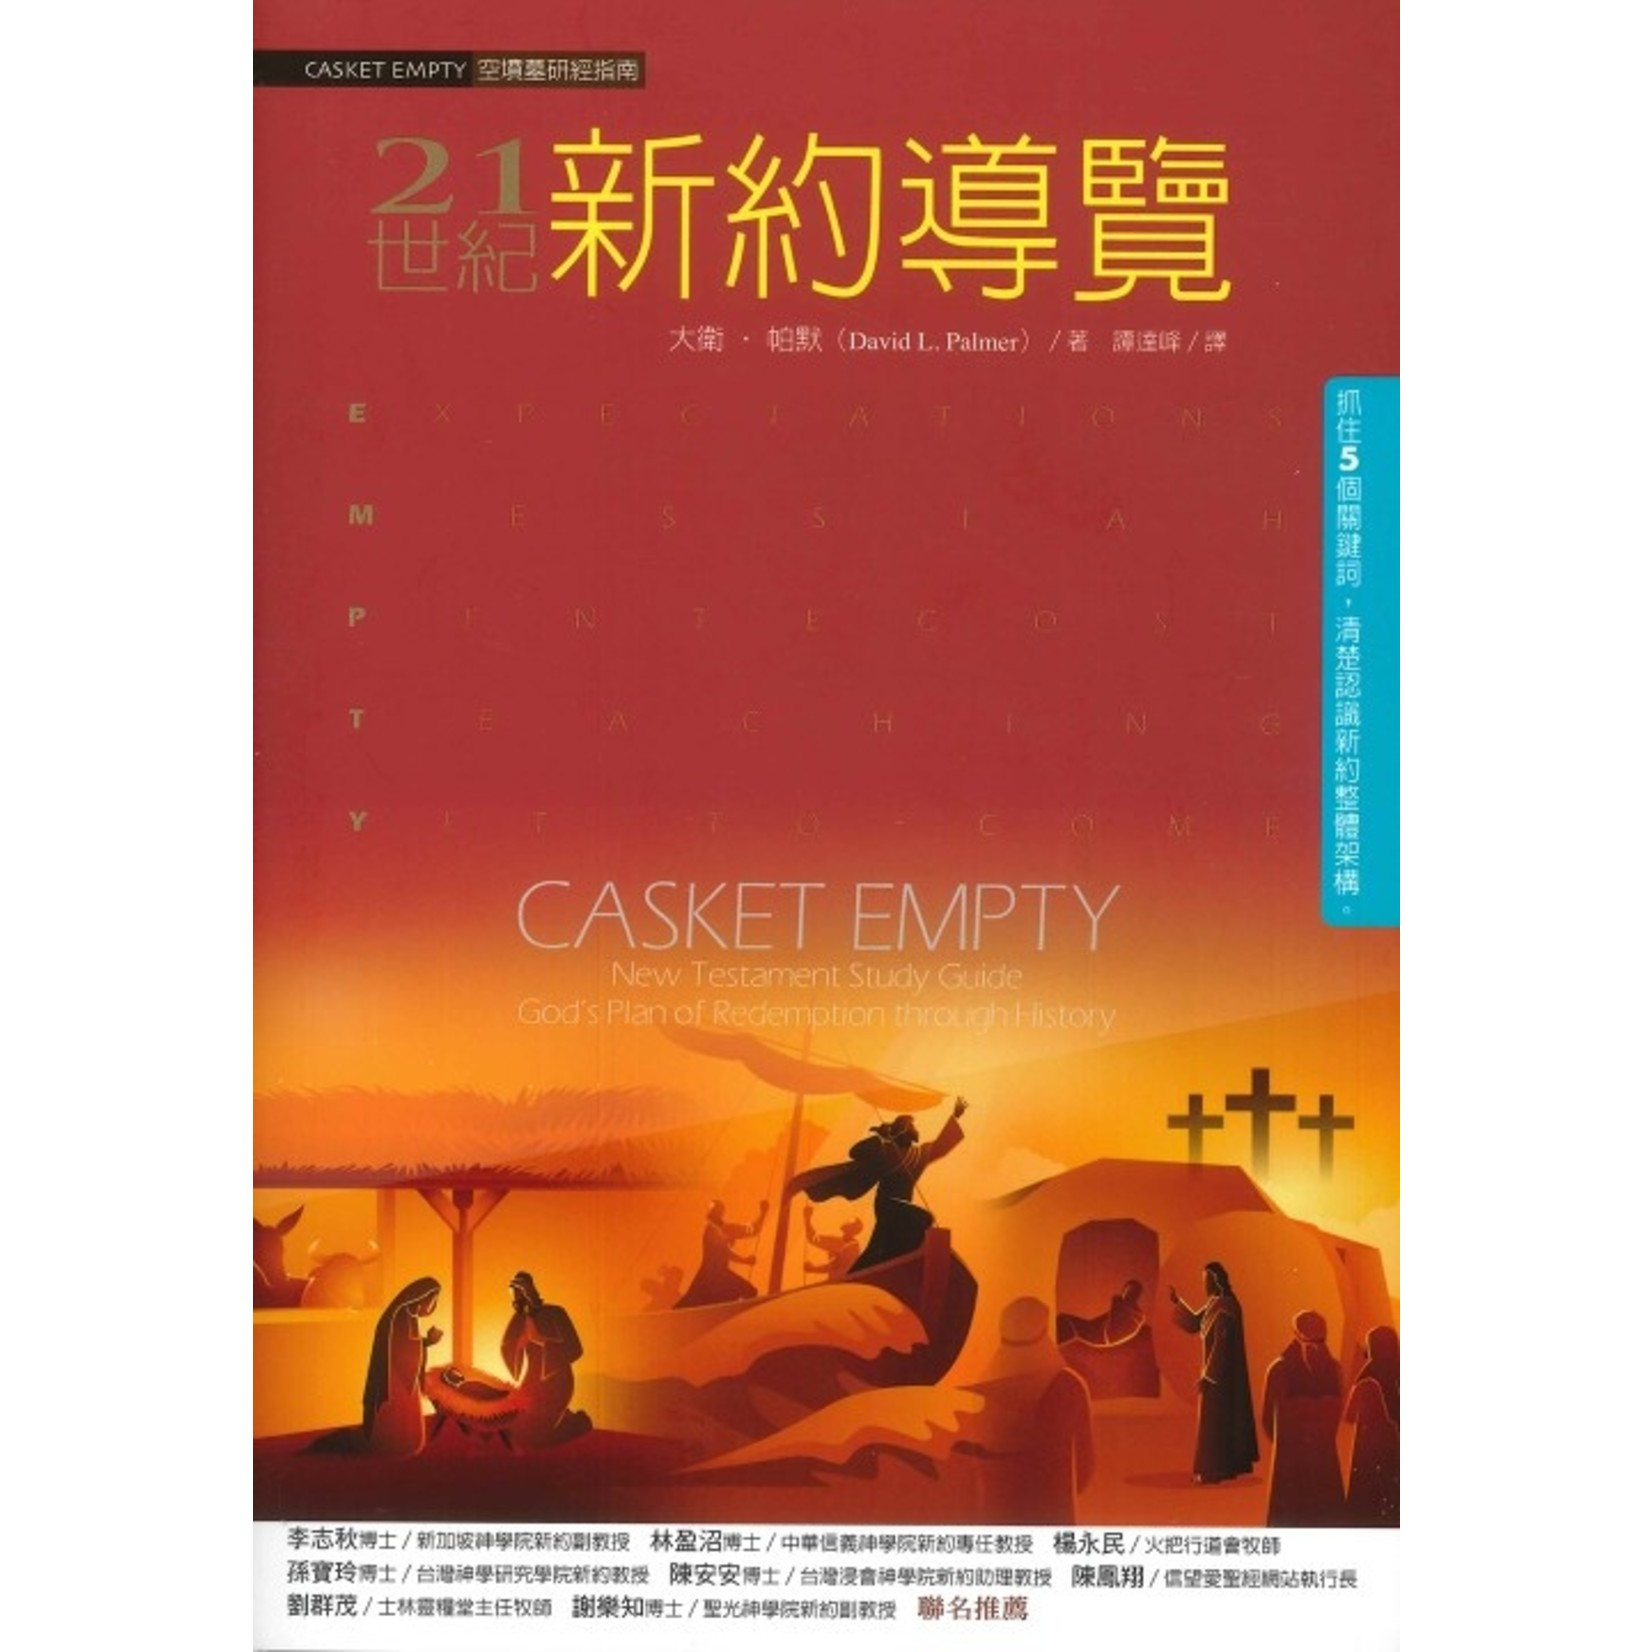 校園書房 Campus Books 21世紀新約導覽 Casket empty: New Testament Study Guide: God's Plan of Redemption through History